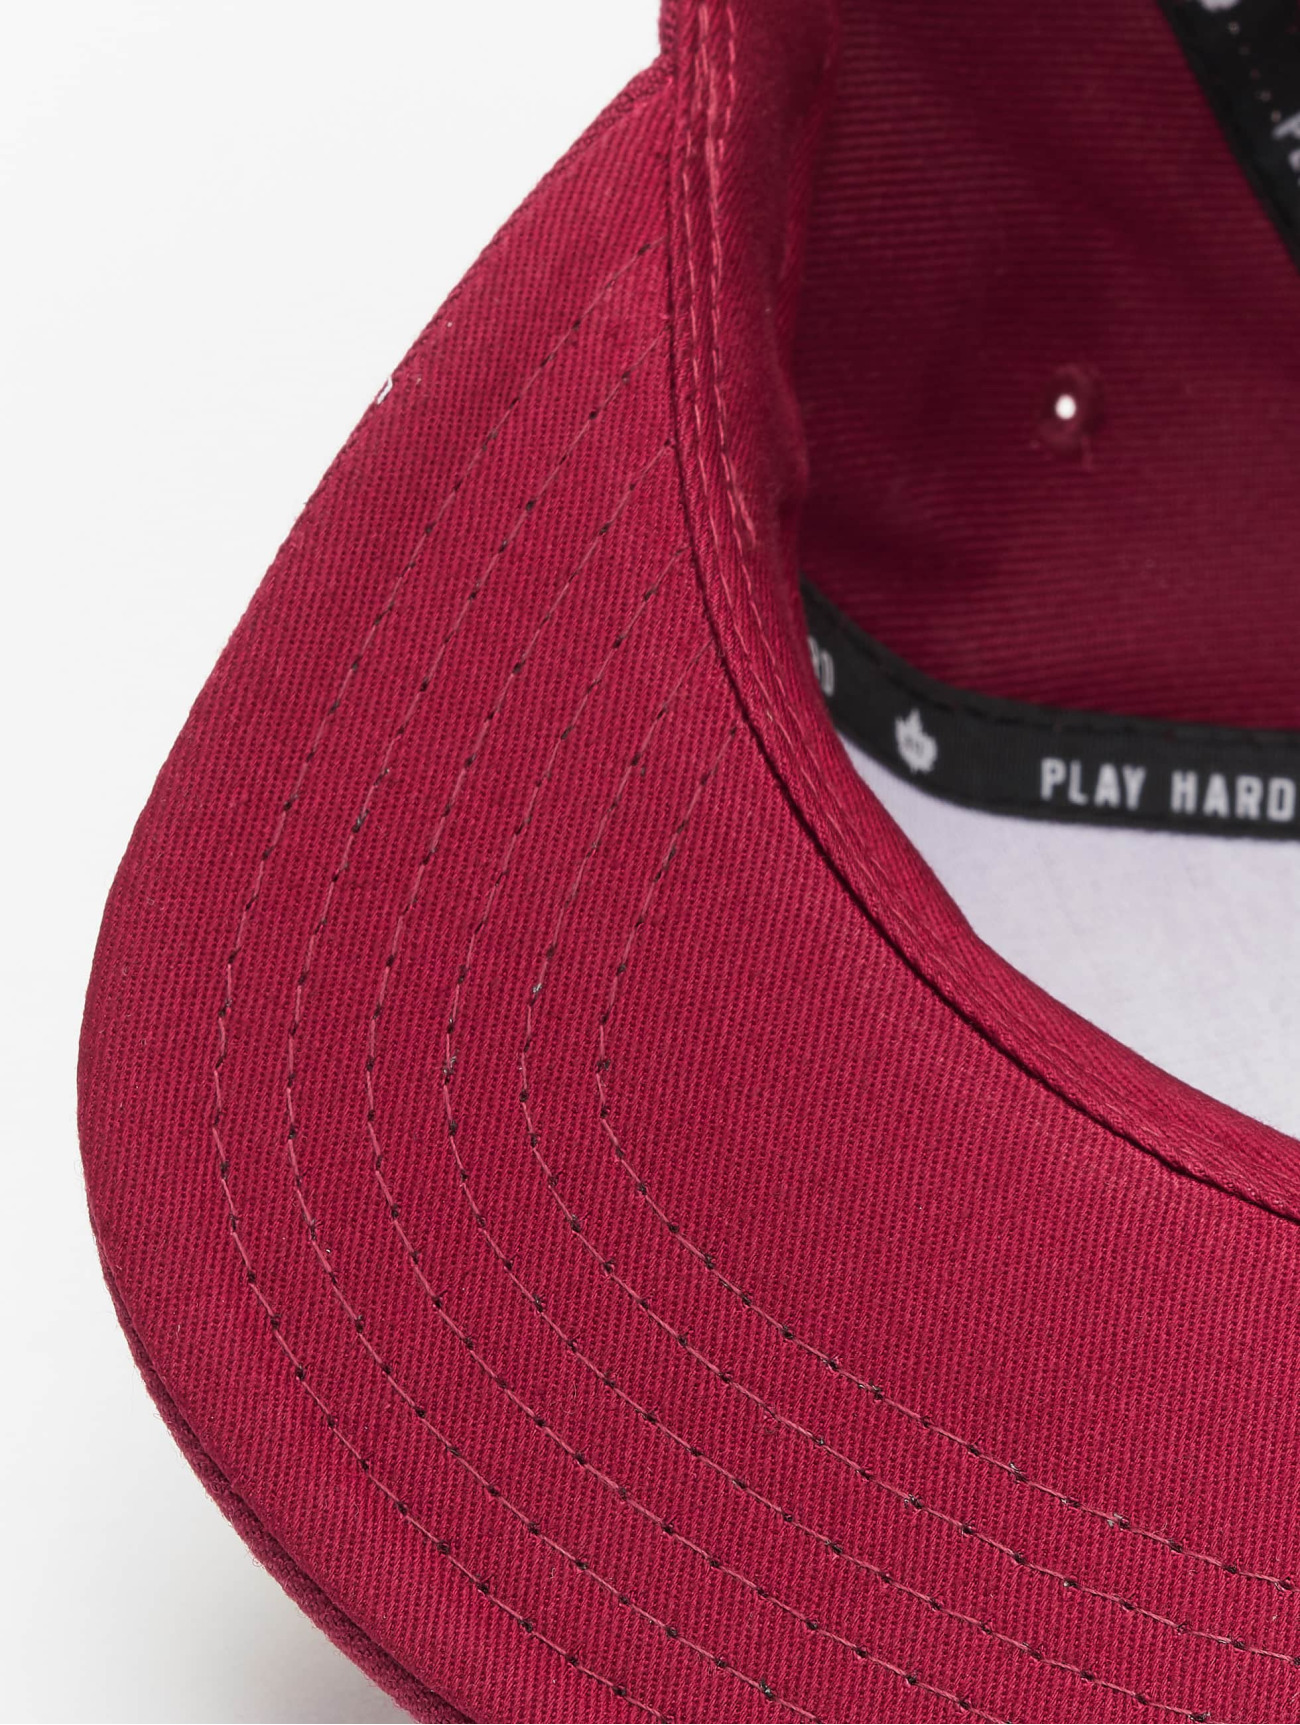 K1X  University of Basketball  rouge  Casquette Snapback & Strapback  429236 Homme Casquettes